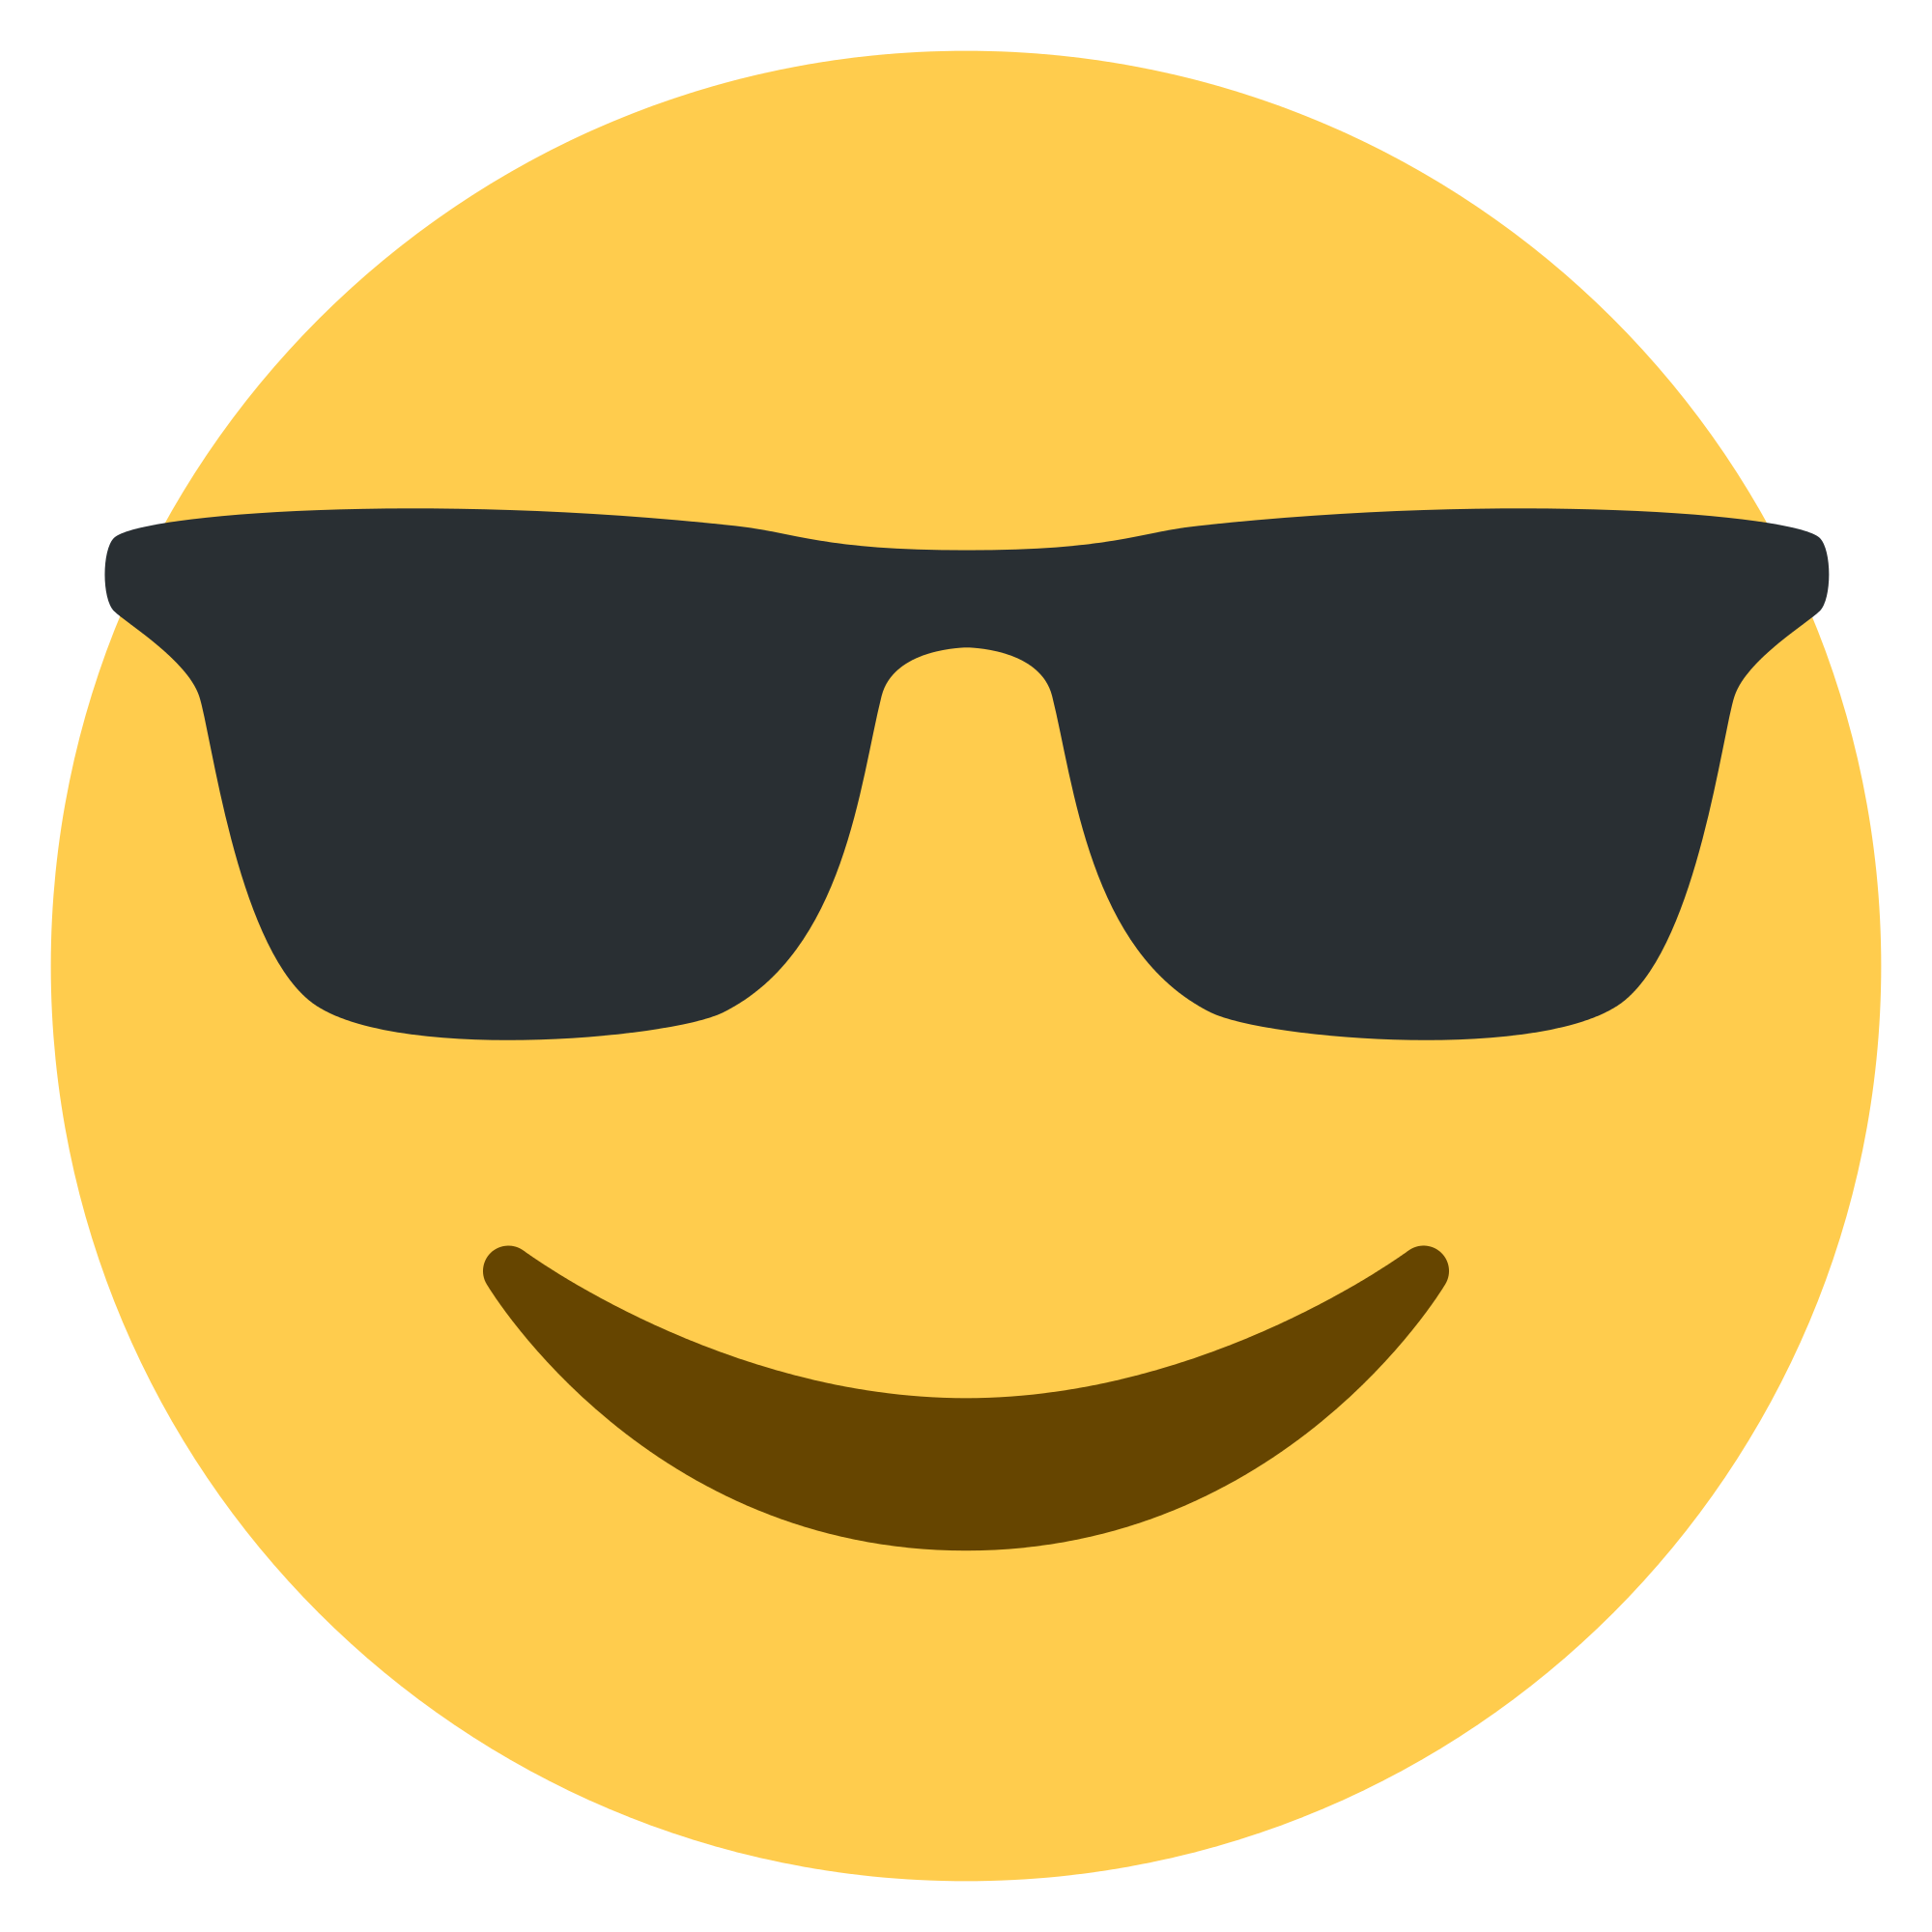 Sunglass svg emoticon. Image black and